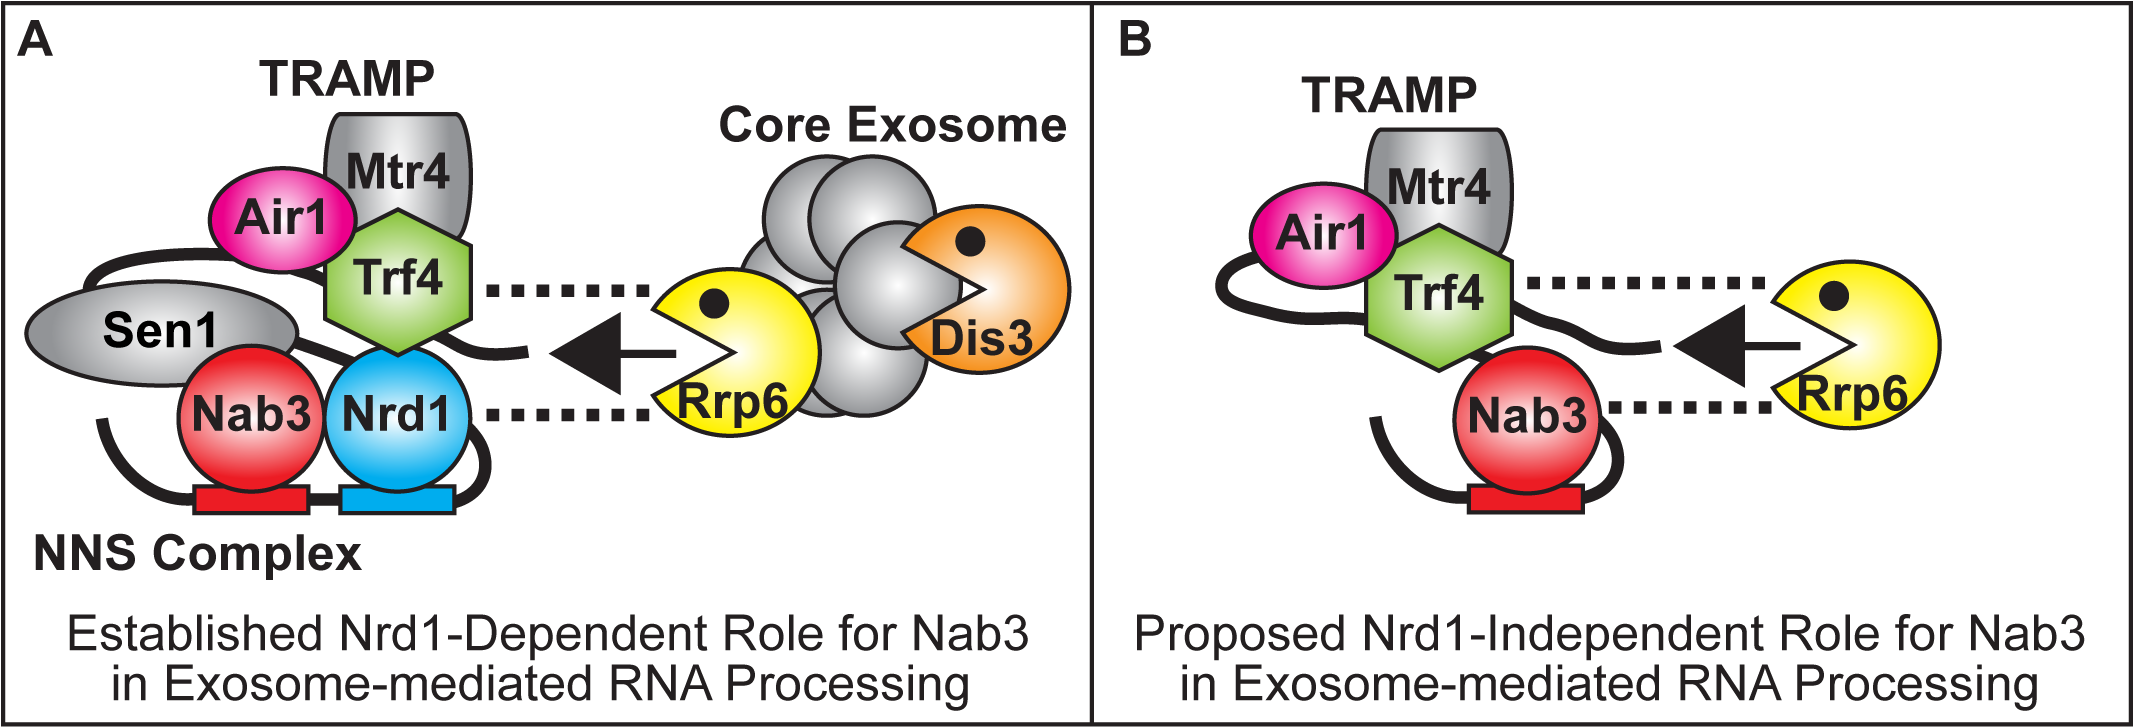 Model for Nrd1-dependent and Nrd1-independent roles of Nab3 in facilitating TRAMP function in the recruitment of the exosome for RNA processing/degradation.